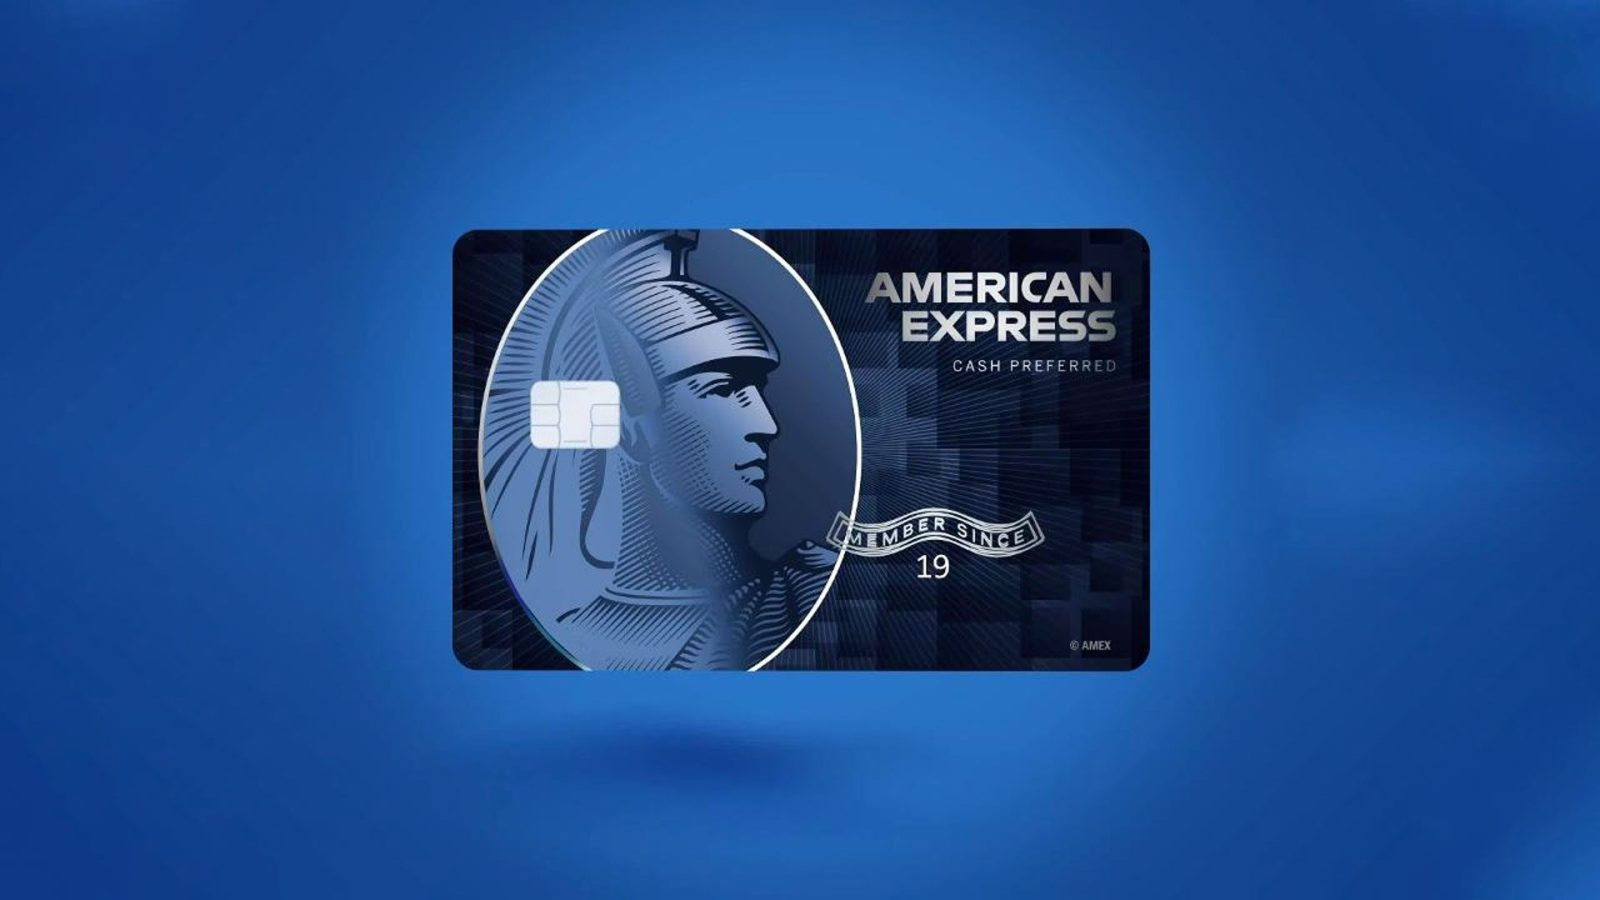 Here's how to use Apple Pay with Amex to get a $10 statement credit